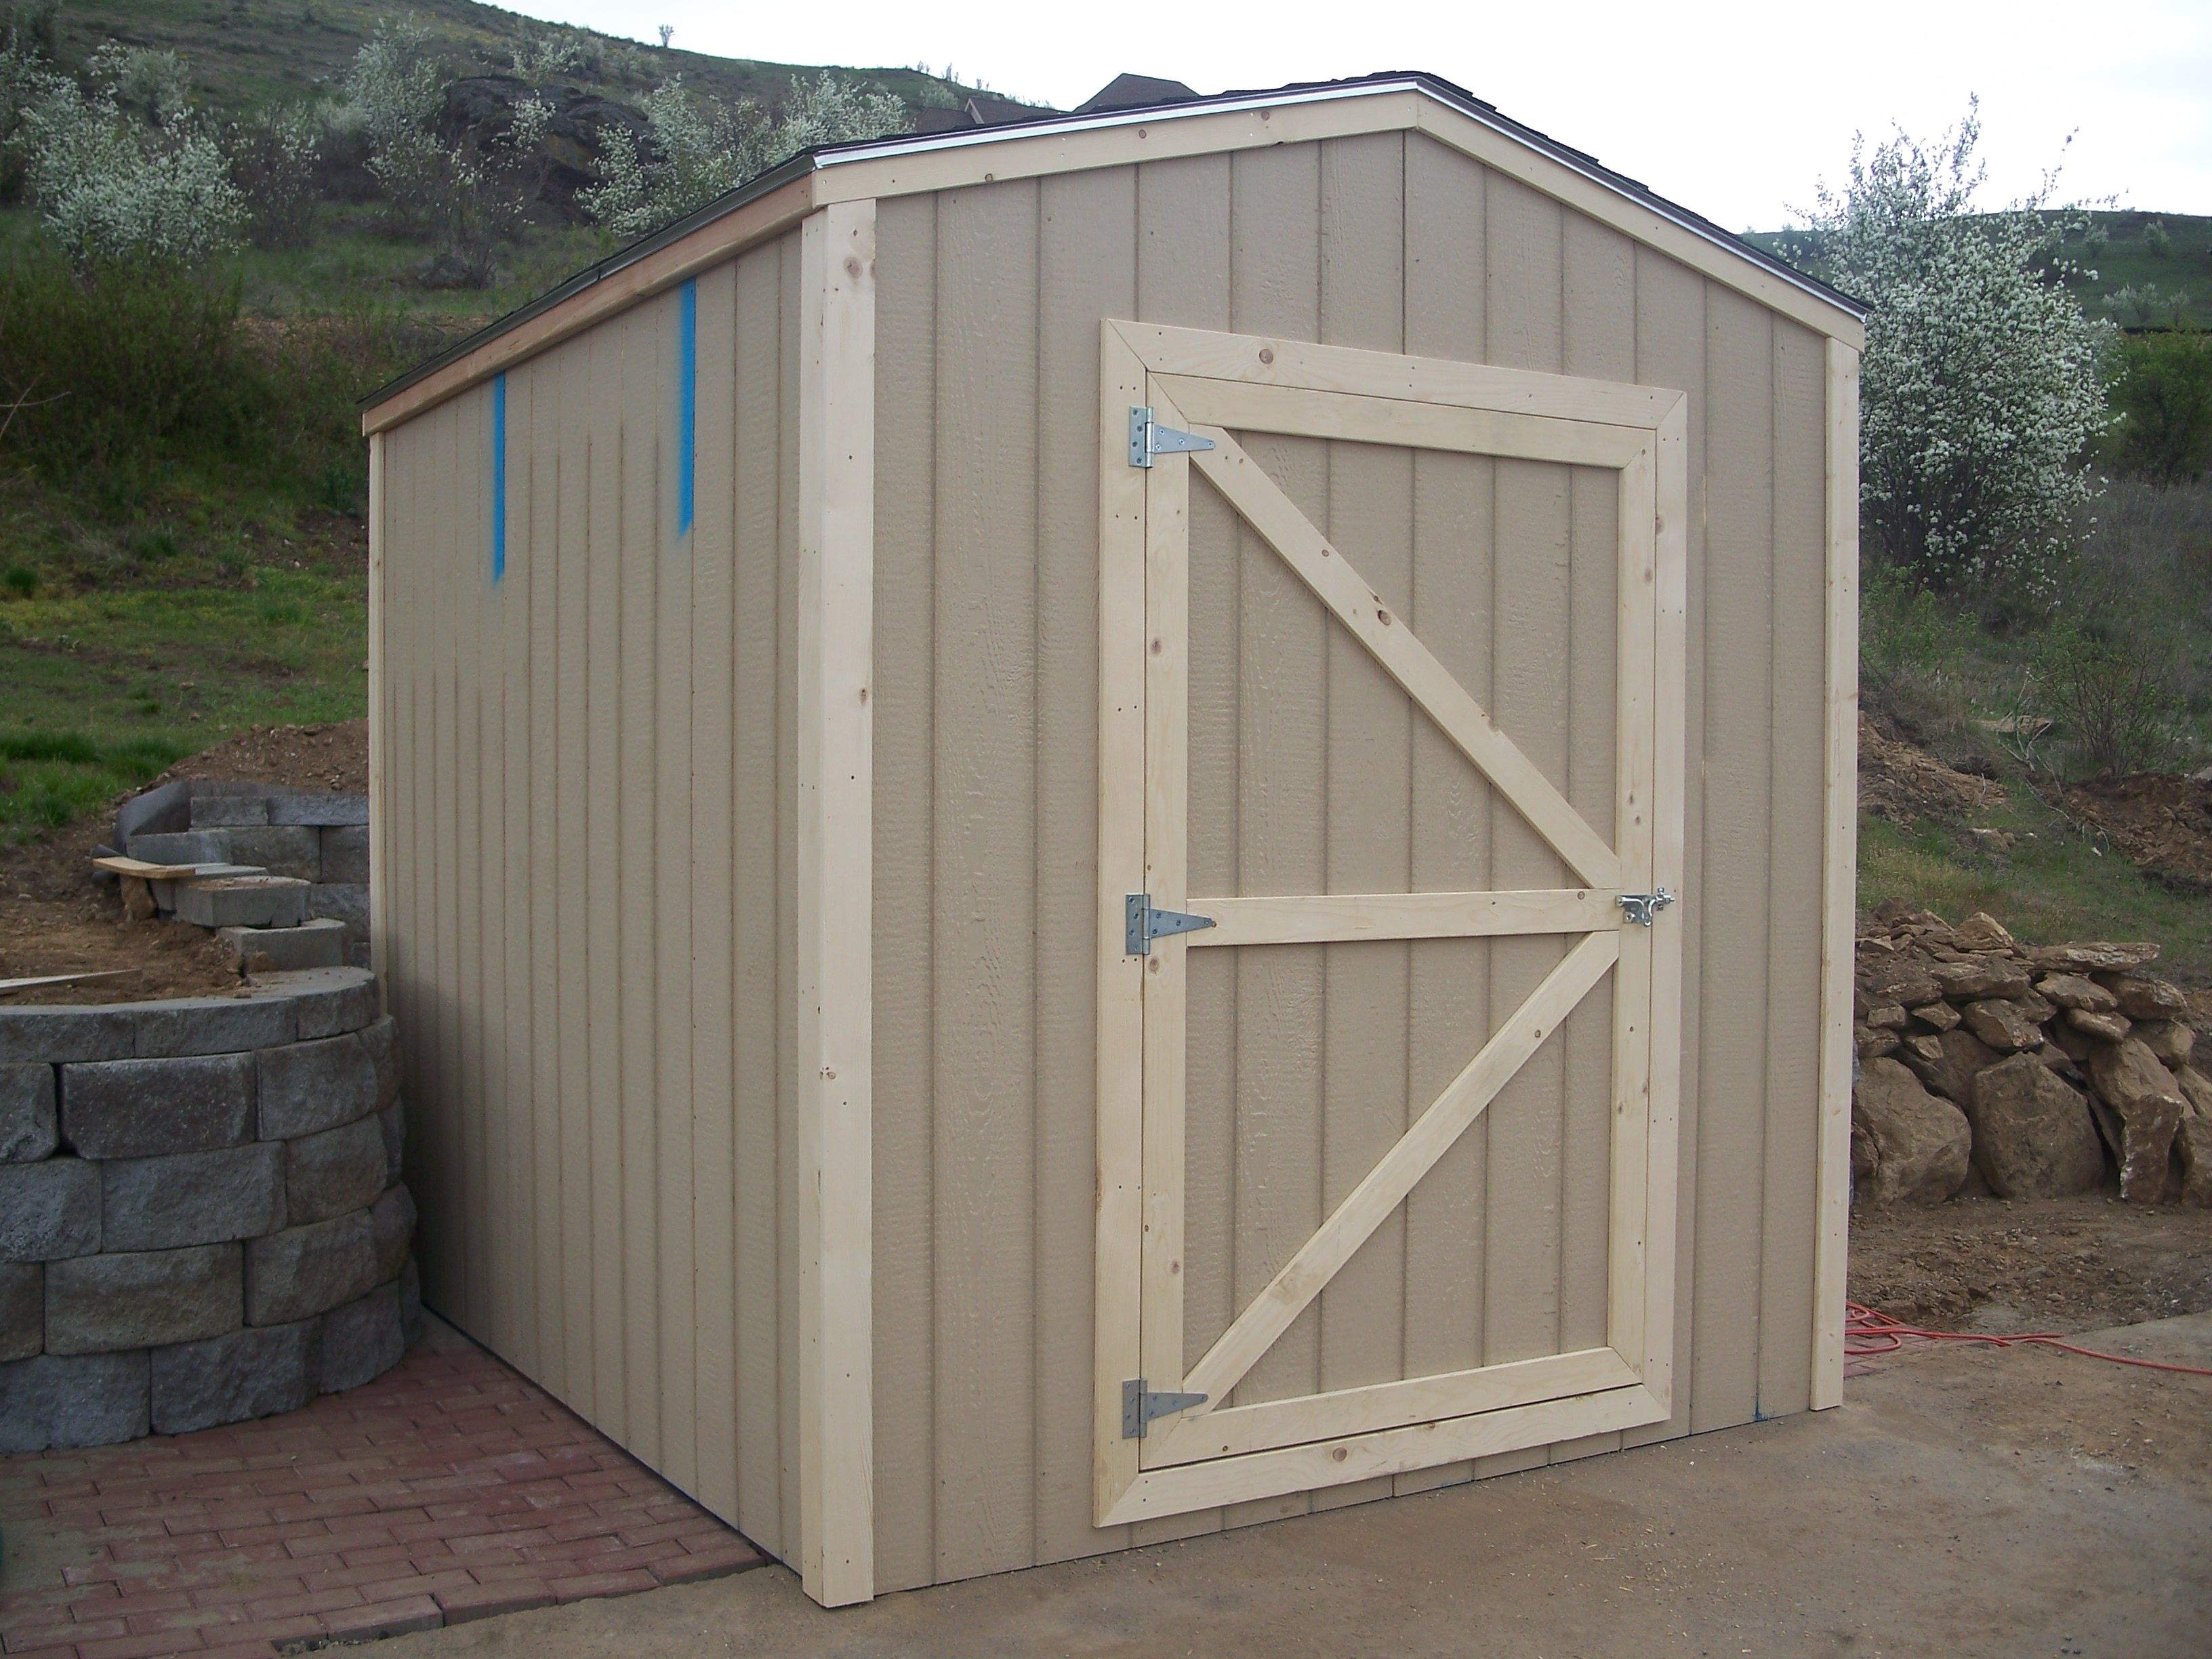 Shed doors Diy Pinterest